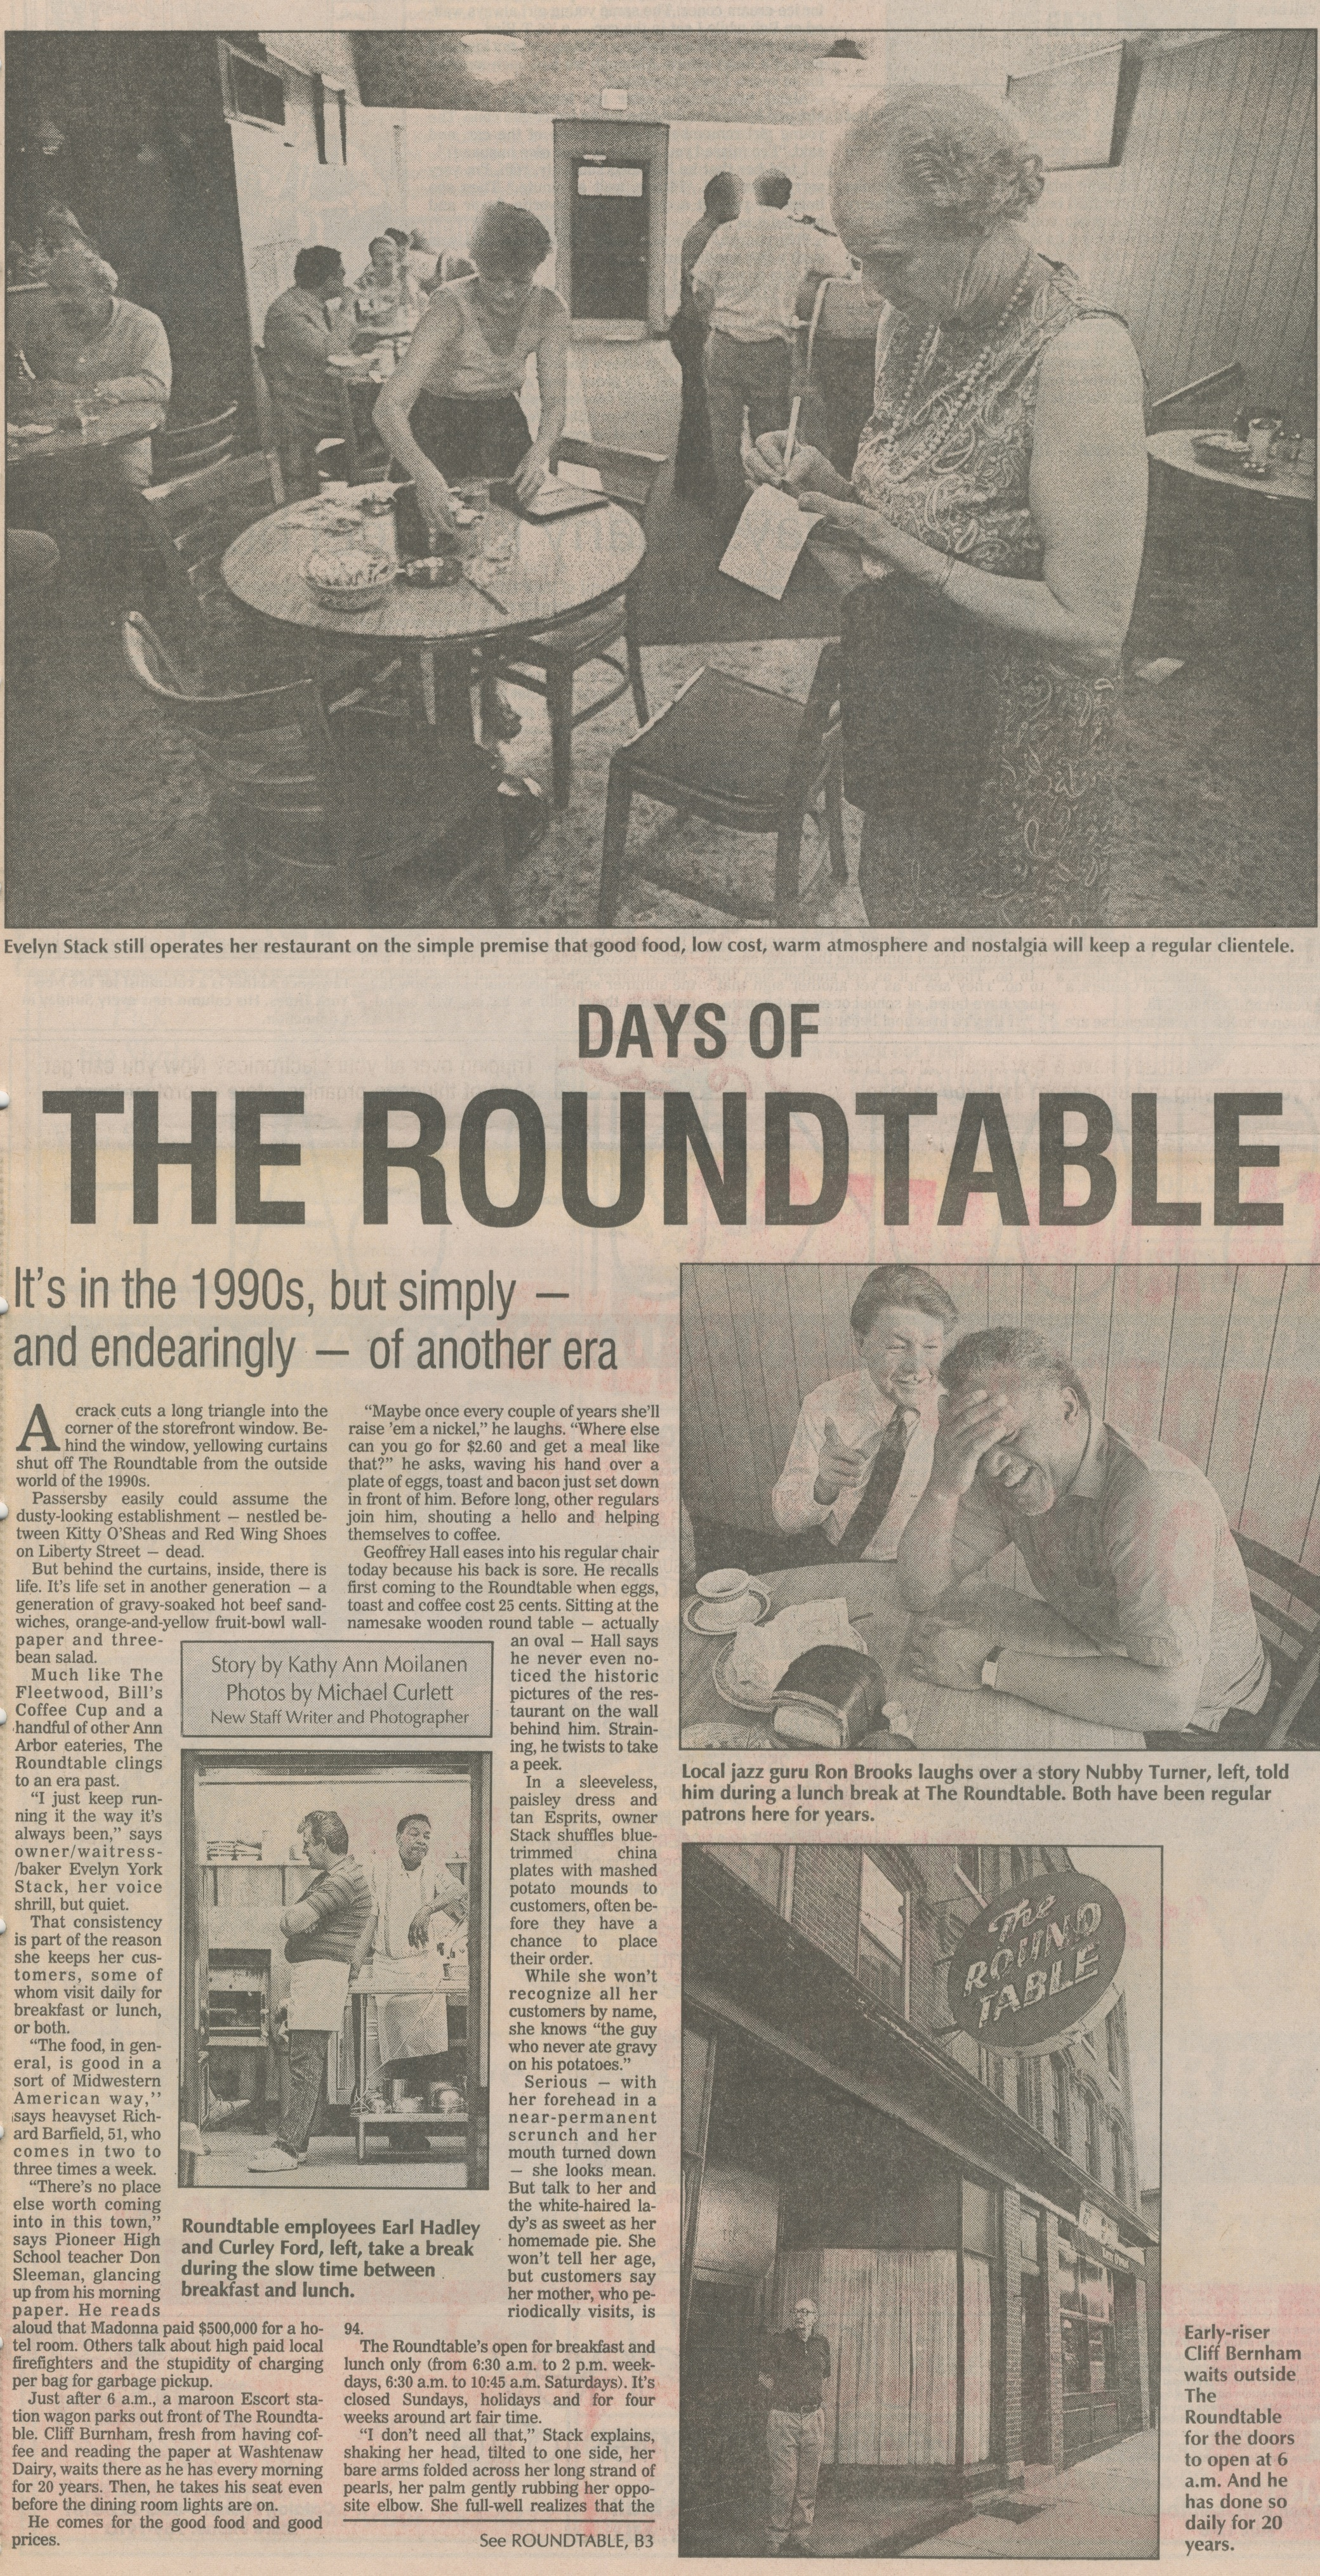 Days Of The Roundtable image